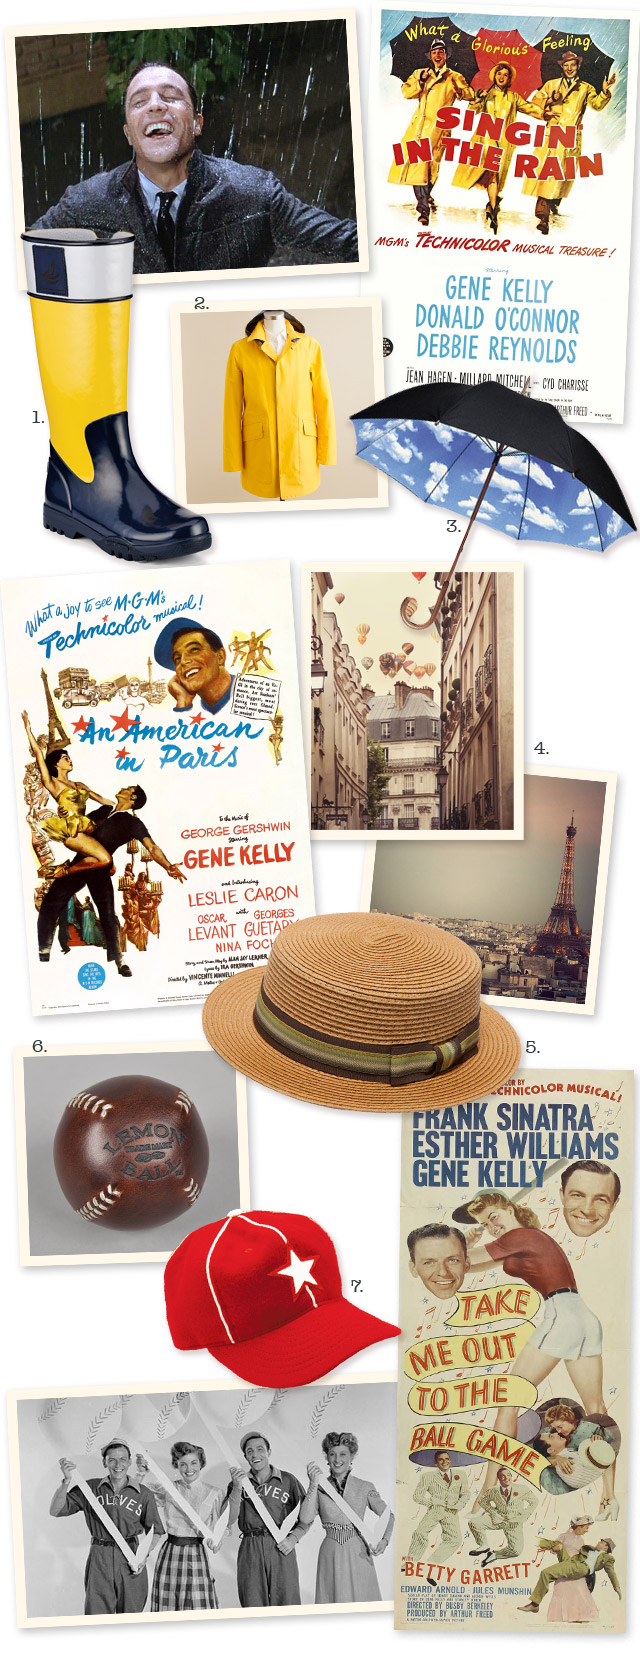 Gift ideas inspired by Gene Kelly films